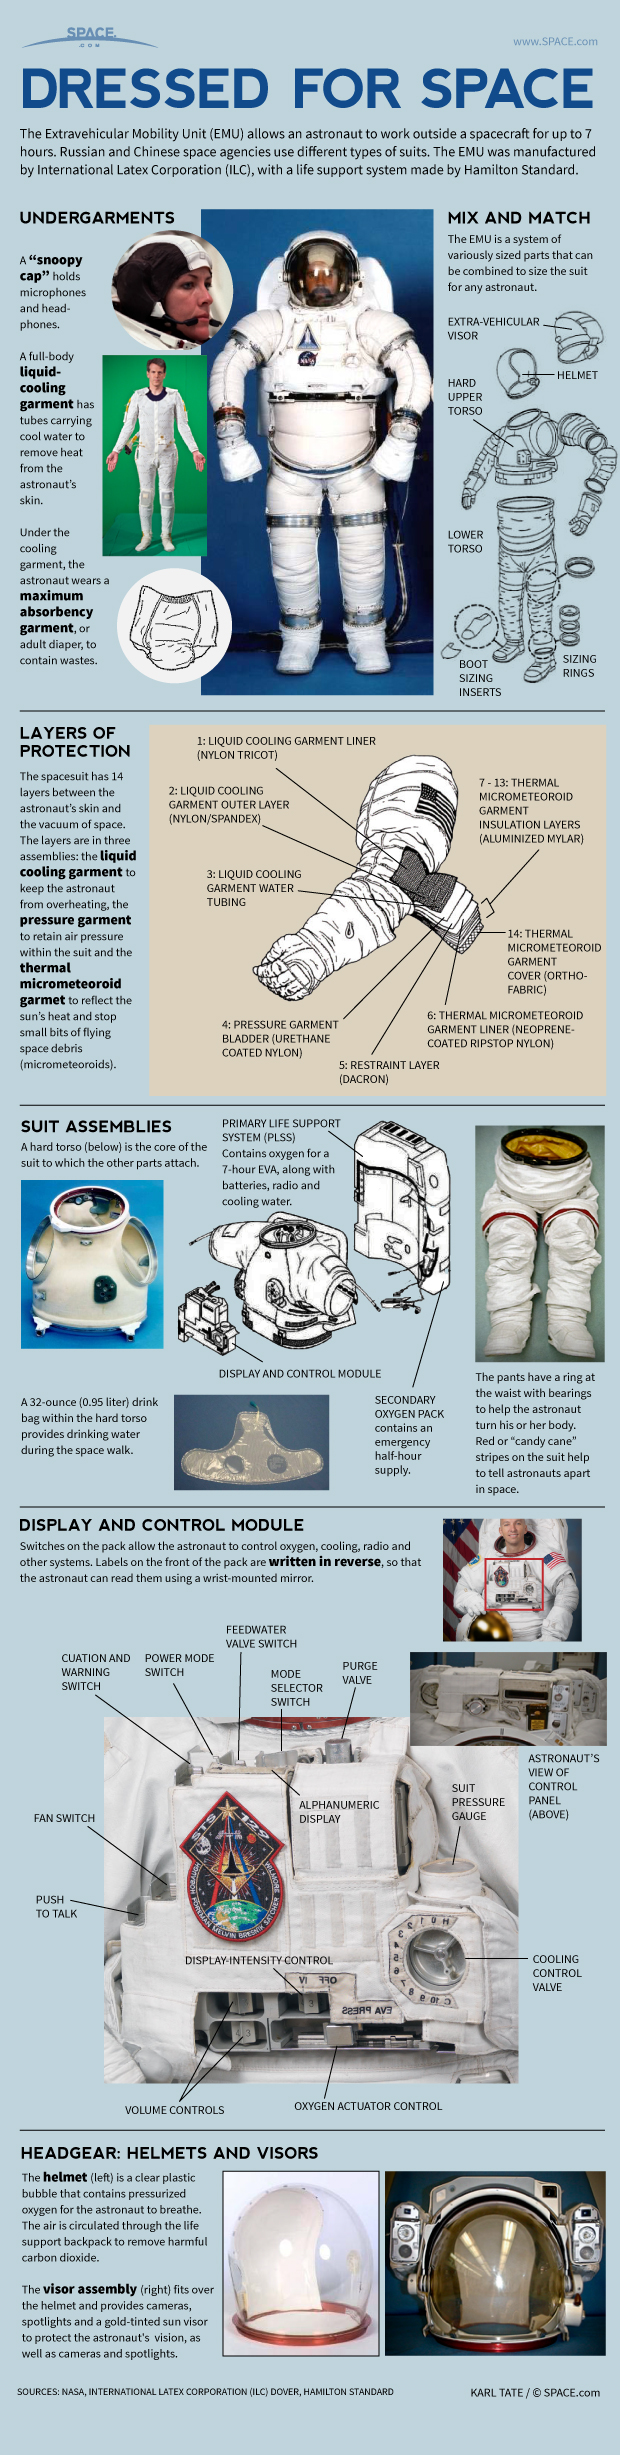 How NASA Spacesuits Work: EMUs Explained (Infographic)